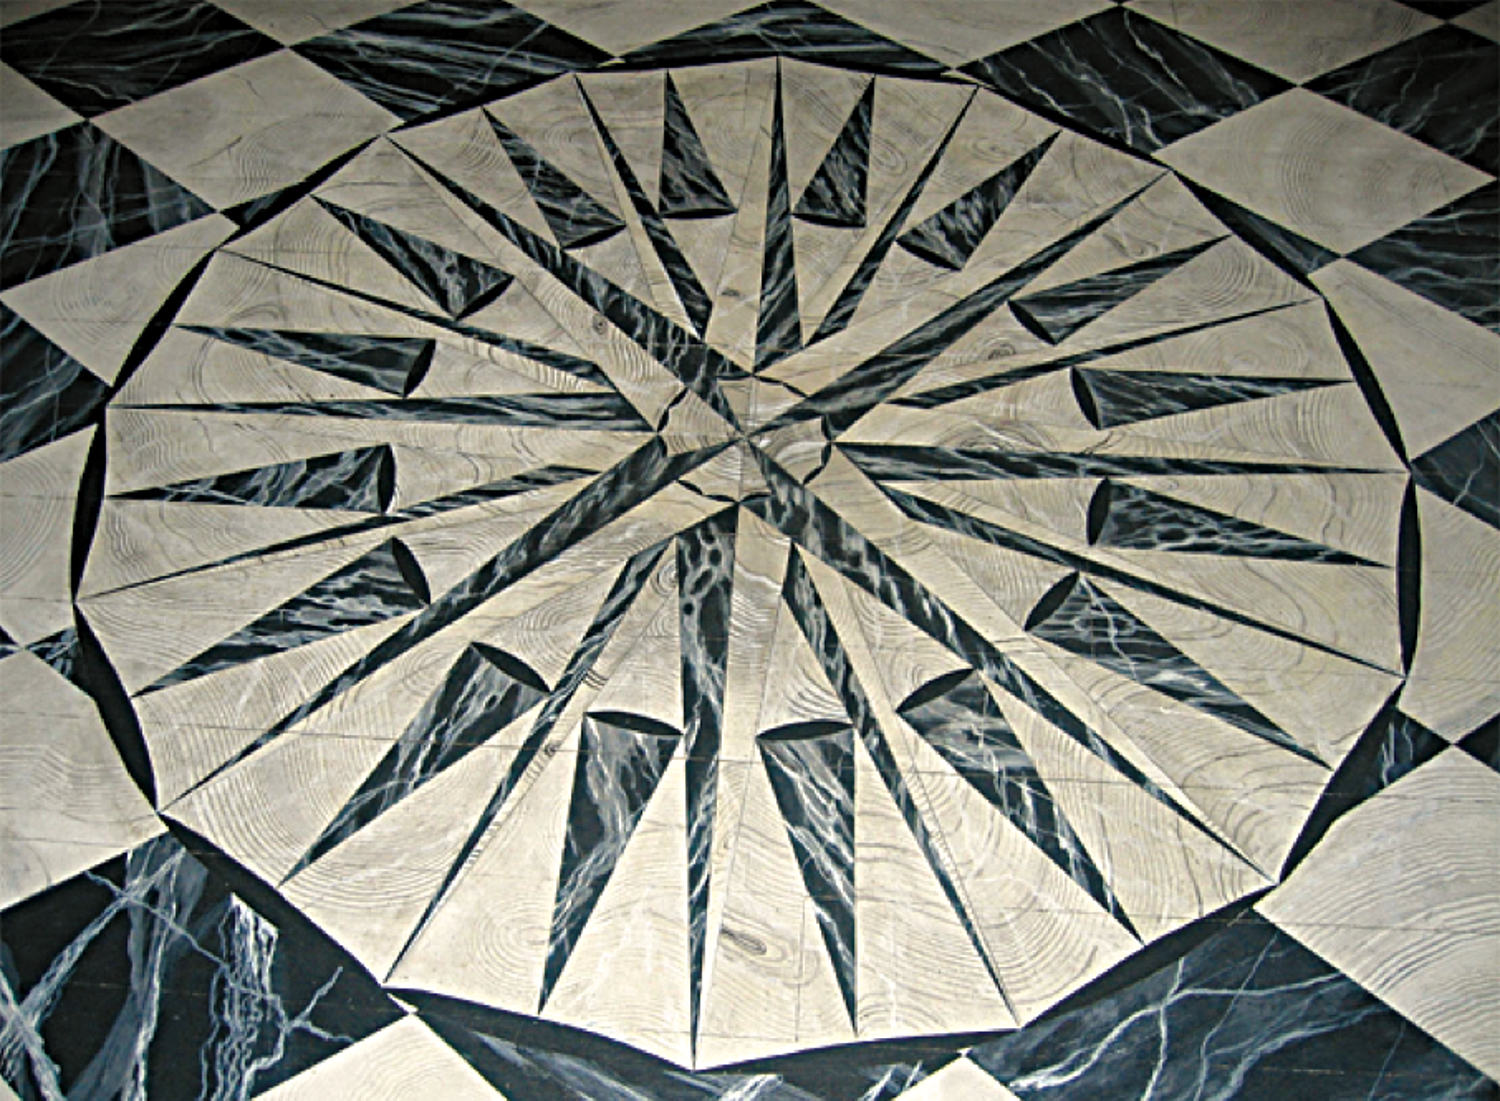 Detail of the compass rose painted on the Foyer floor.